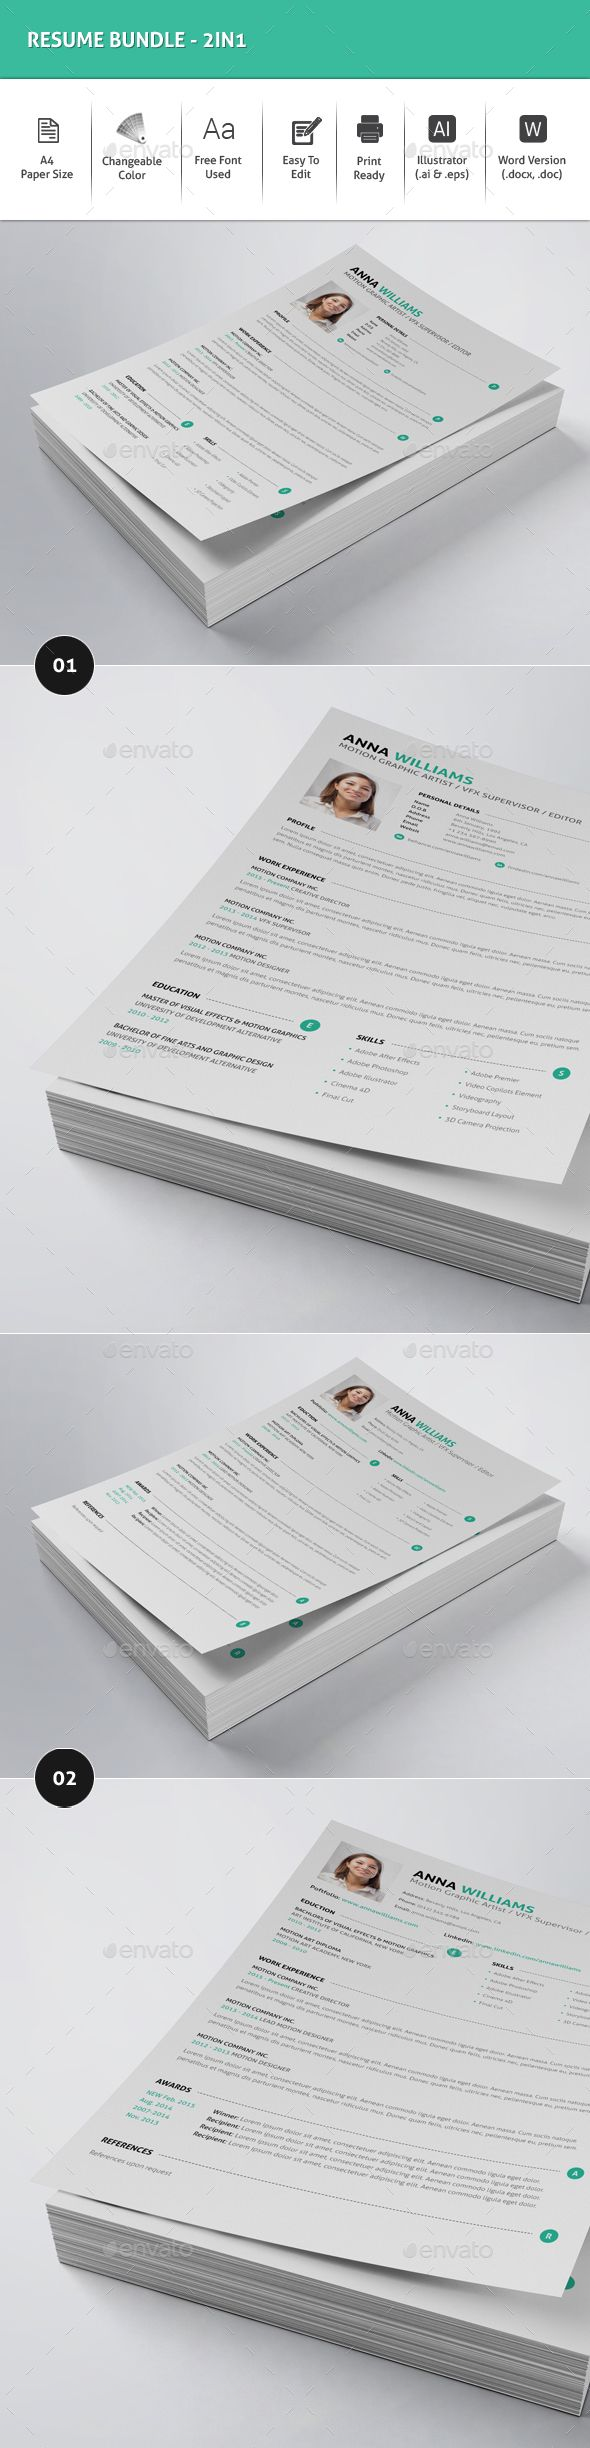 Resume Template Download%0A Resume Bundle   in